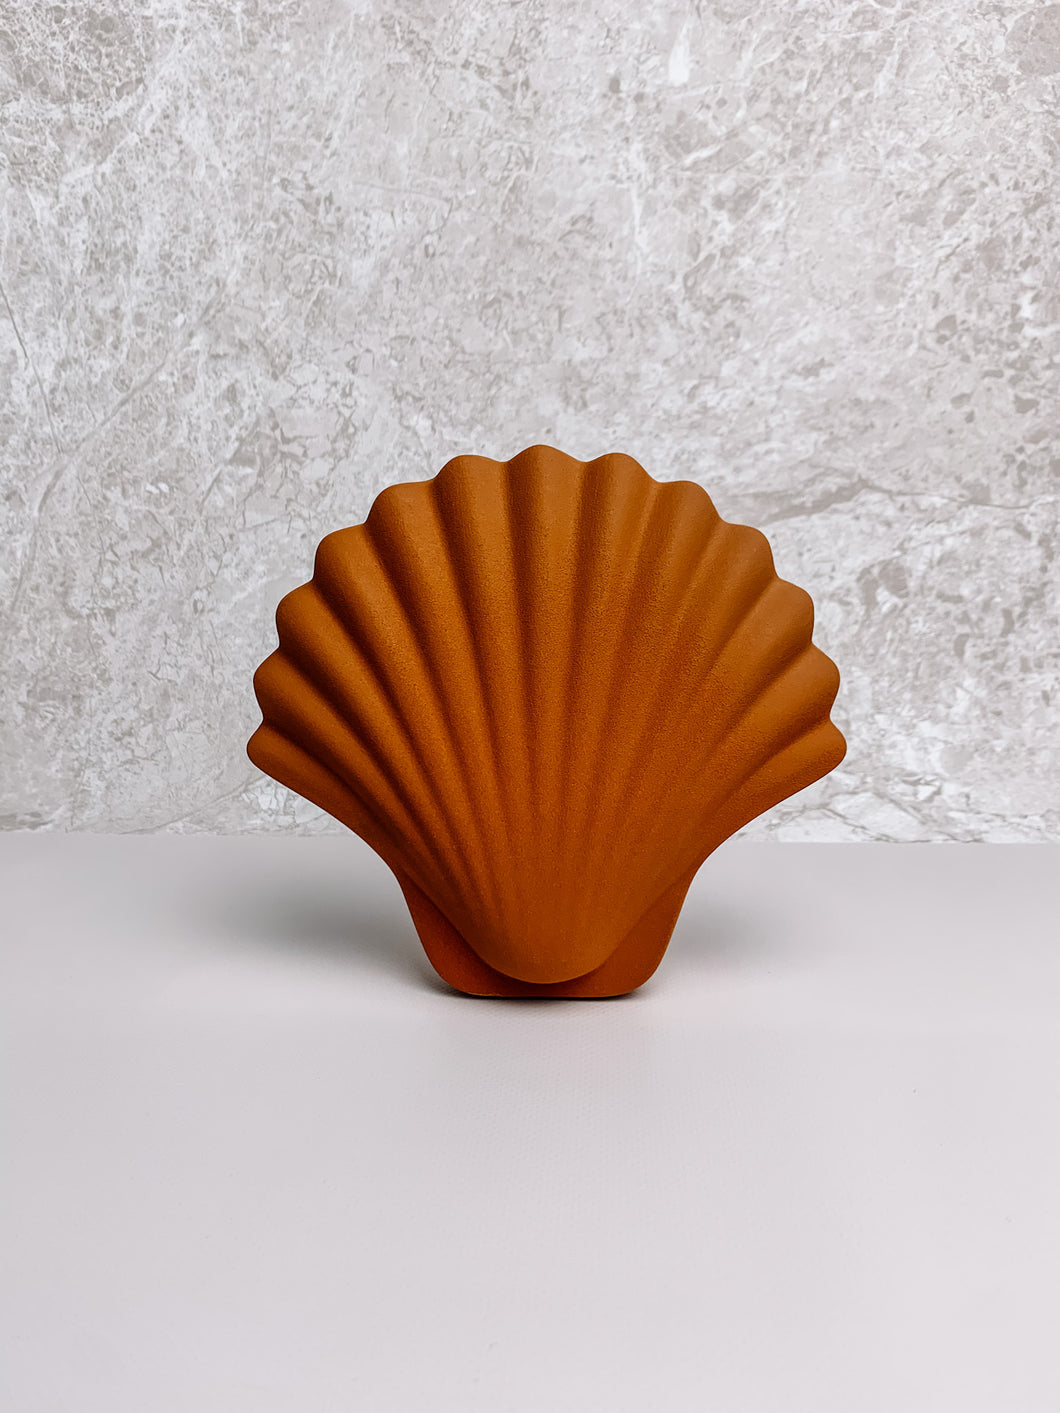 Shell Vase  By Los Objetos Decorativos - Amber